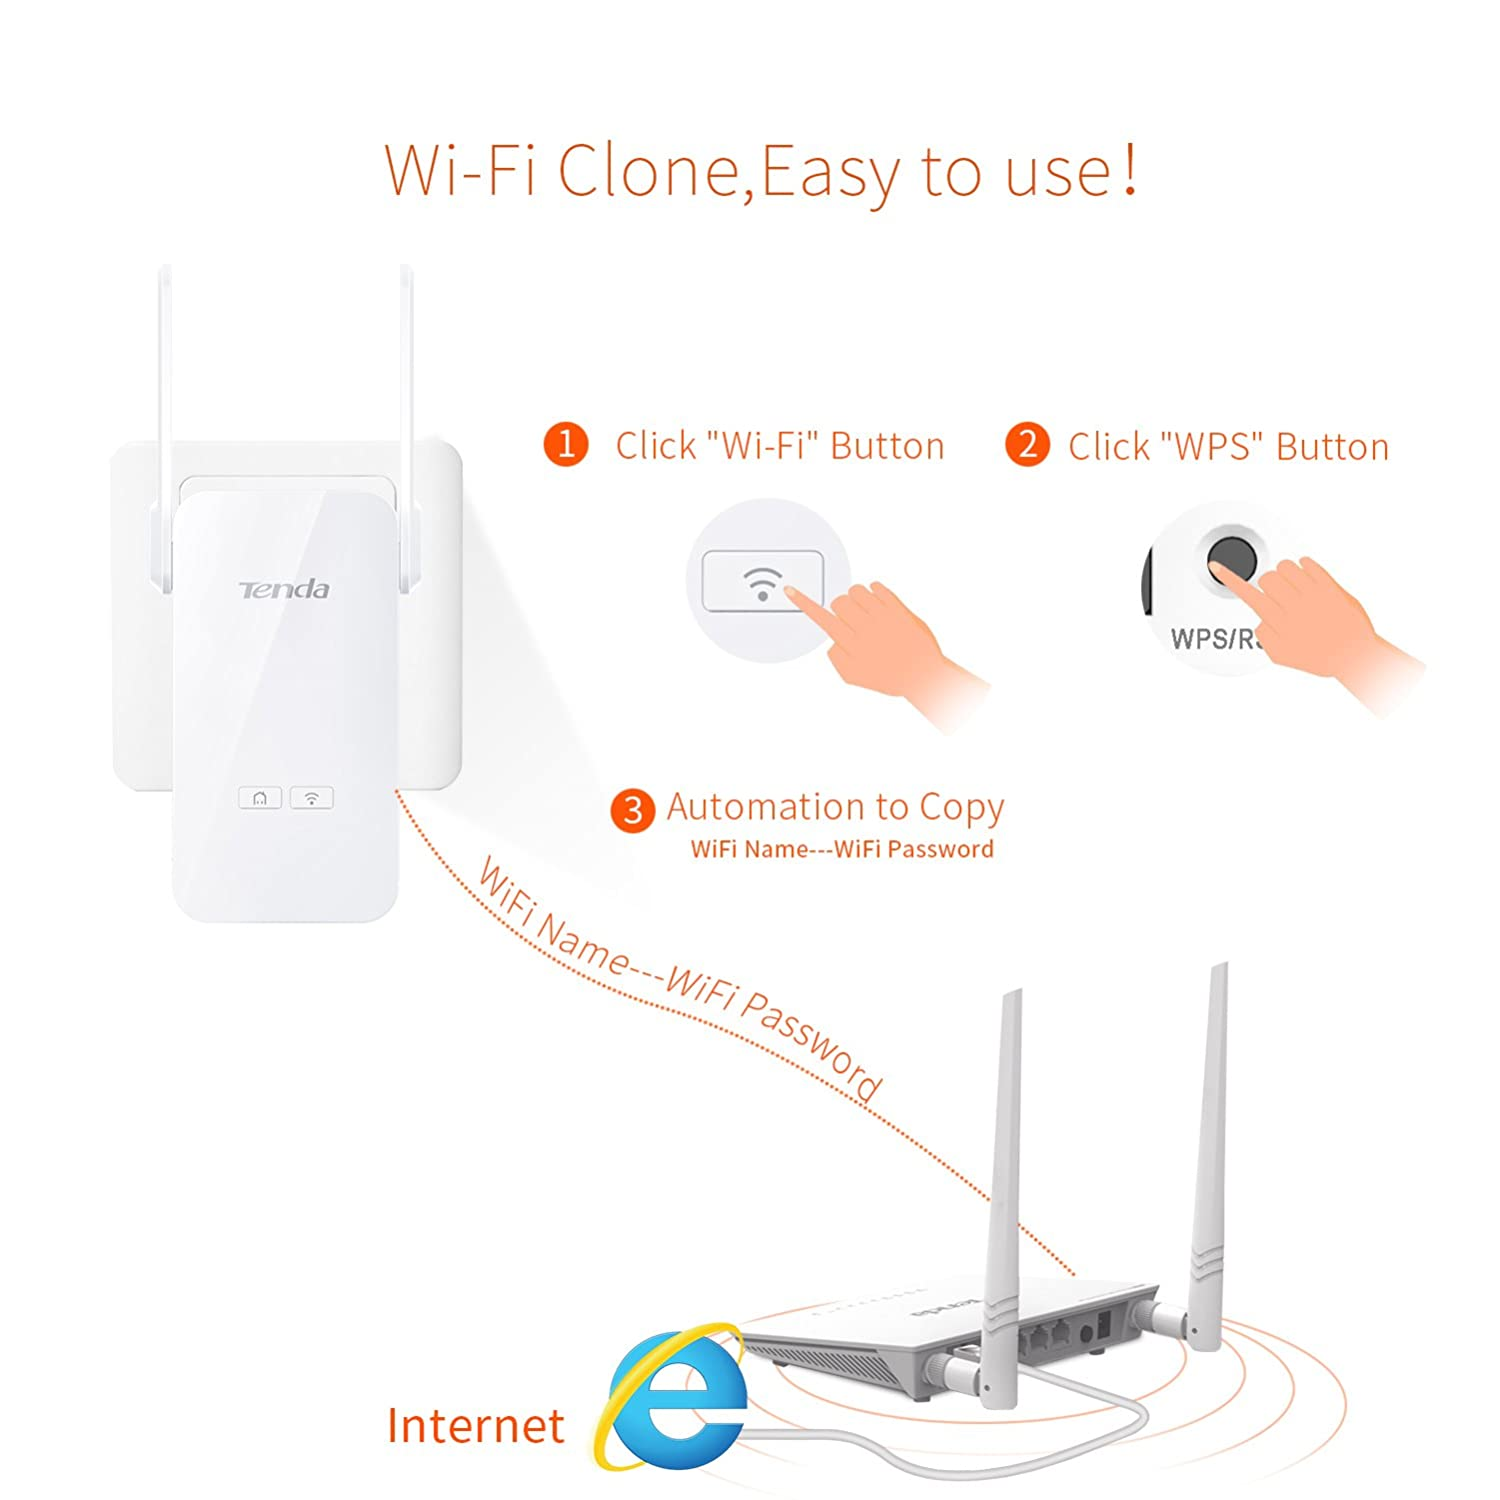 Tenda PA6 Adaptador de Red Gigabit Powerline WiFi (1000 Mbps, 2 Puerto Gigabit, HDTV, Ahorro de energía, Plug & Play, WPS, Compatible con Otros ...